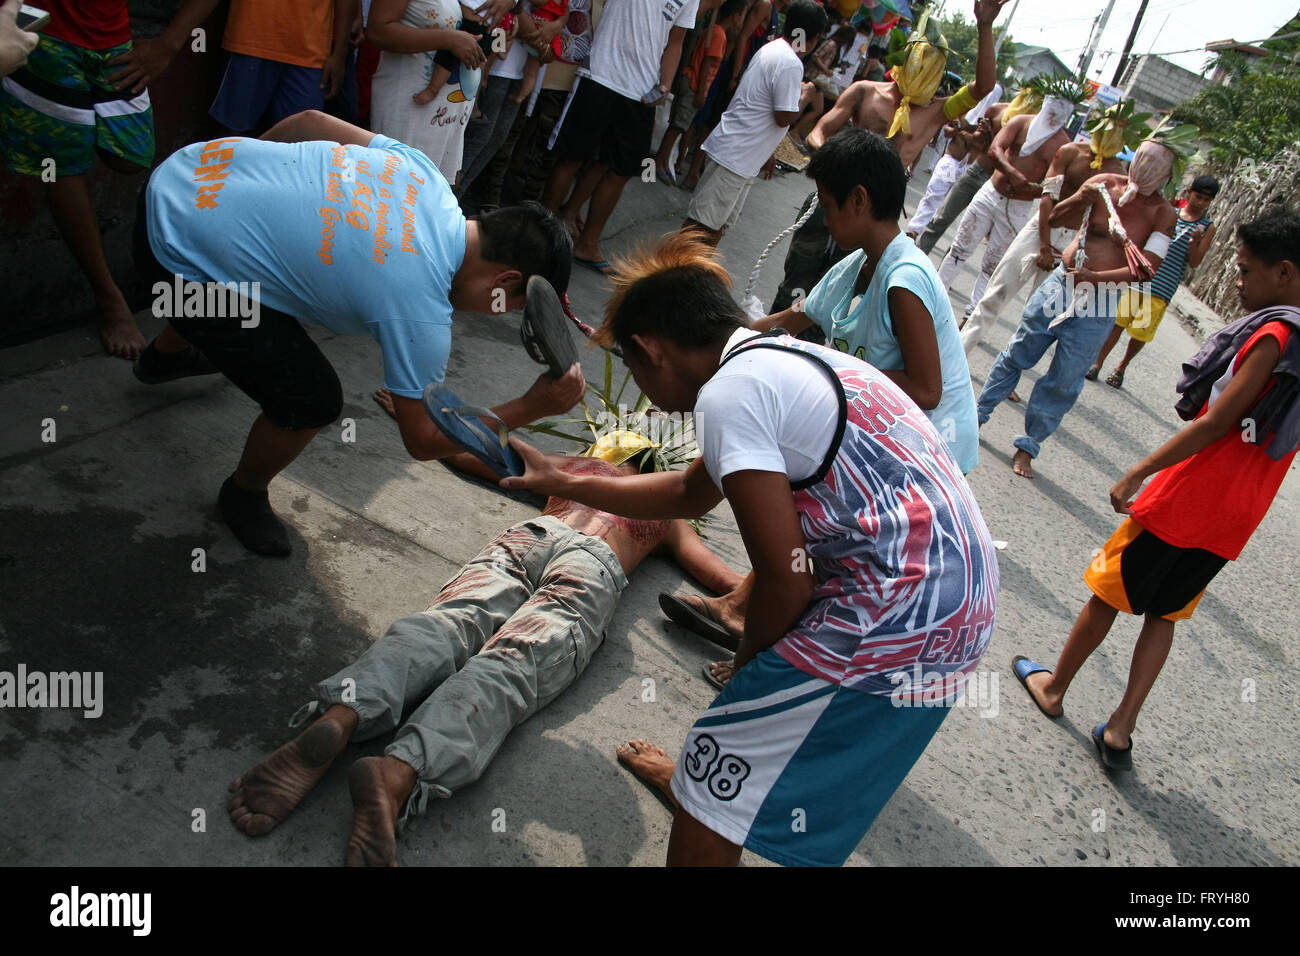 Philippines. 25th Mar, 2016. A penitent is hit with srubber slippers in San Fernando, Pampanga. Flagellants use - Stock Image